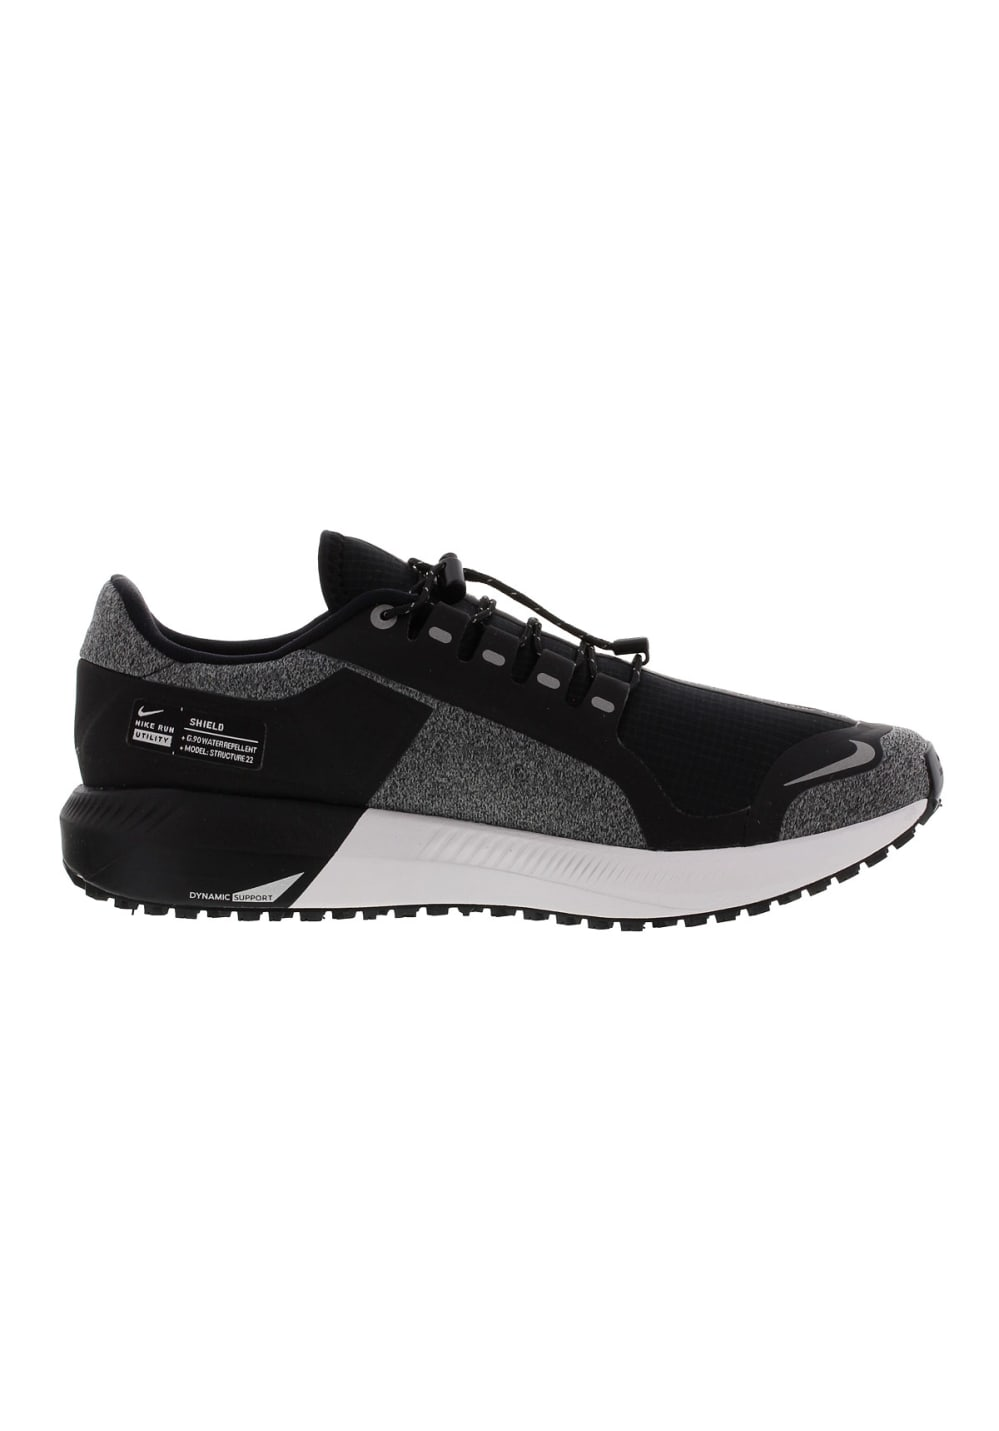 los angeles 1a8df 58c86 Nike Air Zoom Structure 22 Rn Shield - Running shoes for Women - Black